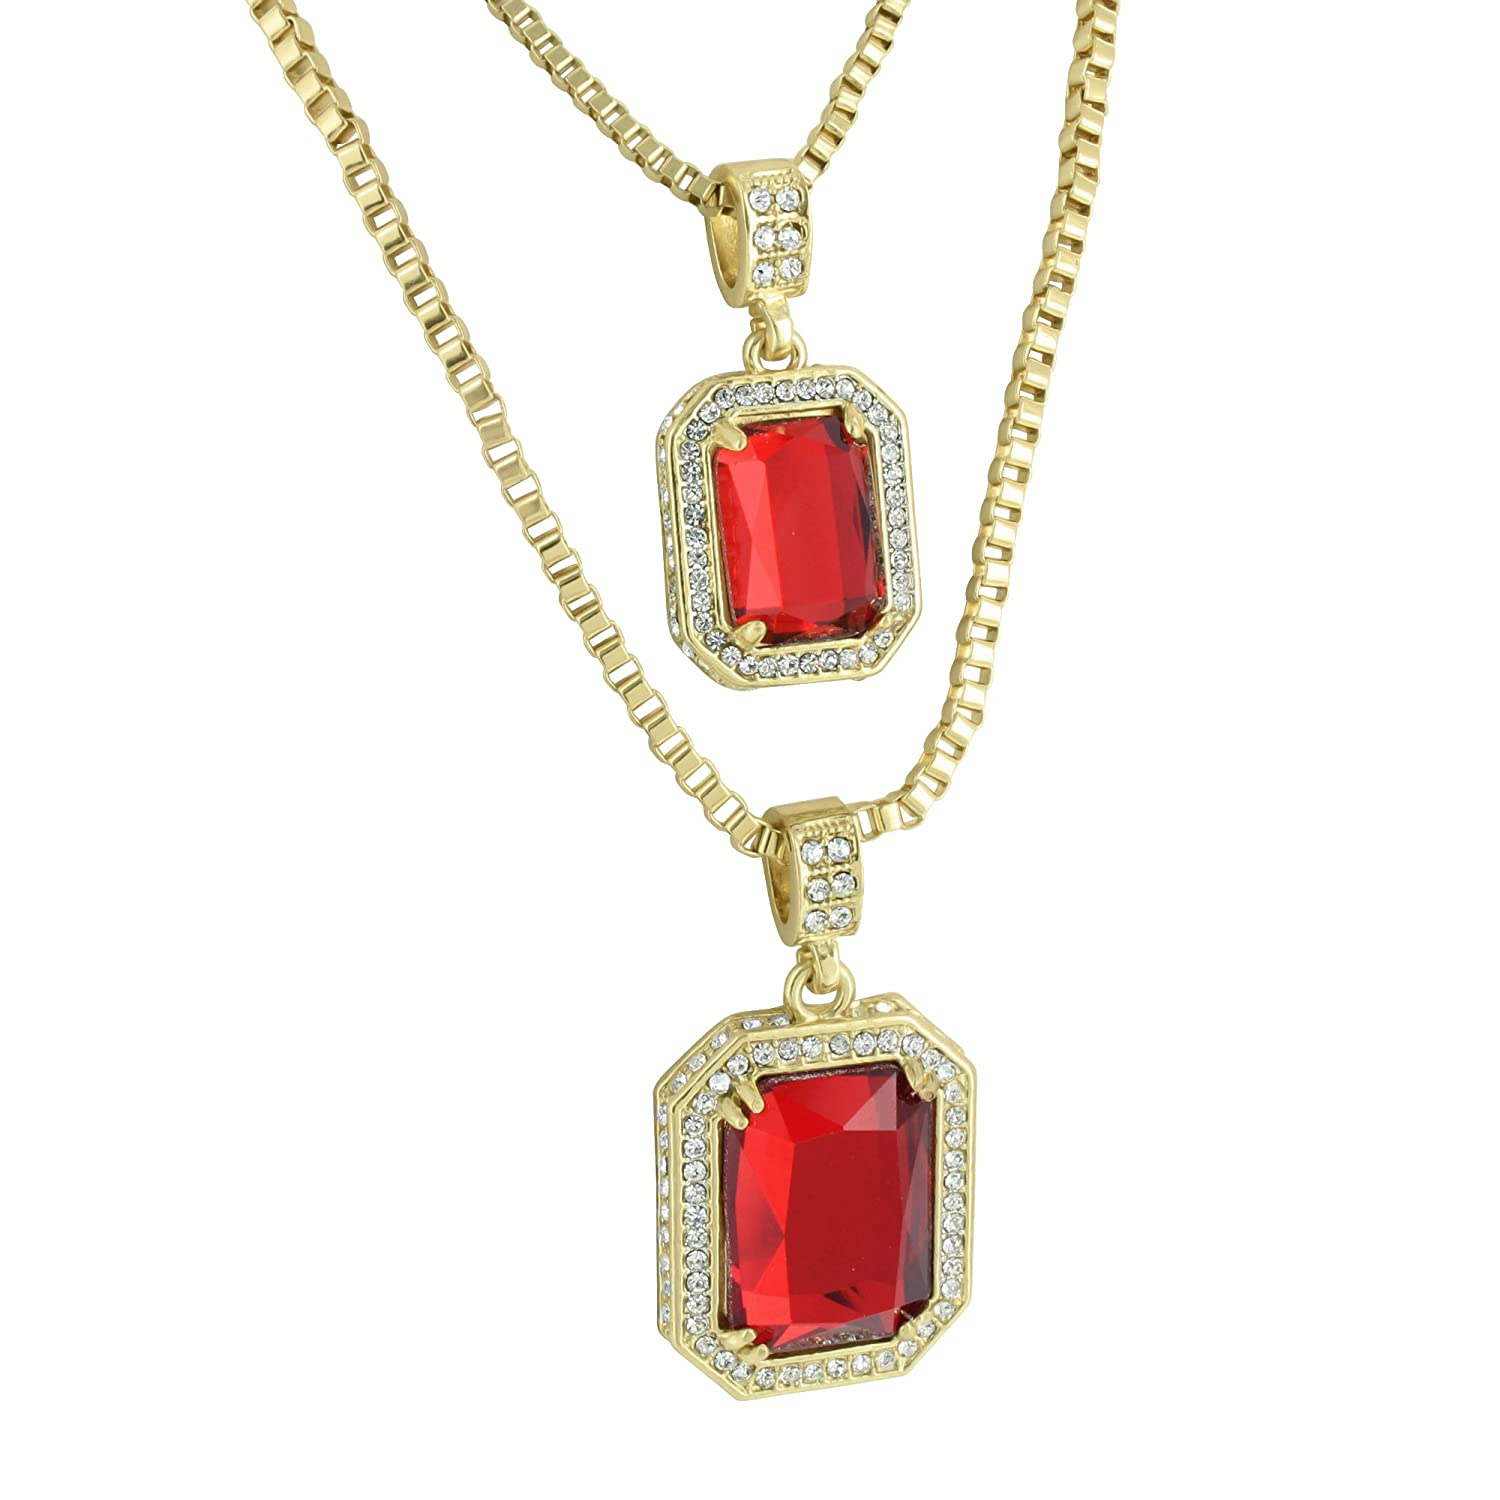 Garnet ruby pendants set free necklaces 14k gold finish lab diamond garnet ruby pendants set free necklaces 14k gold finish lab diamond rapper wear amazon mozeypictures Choice Image